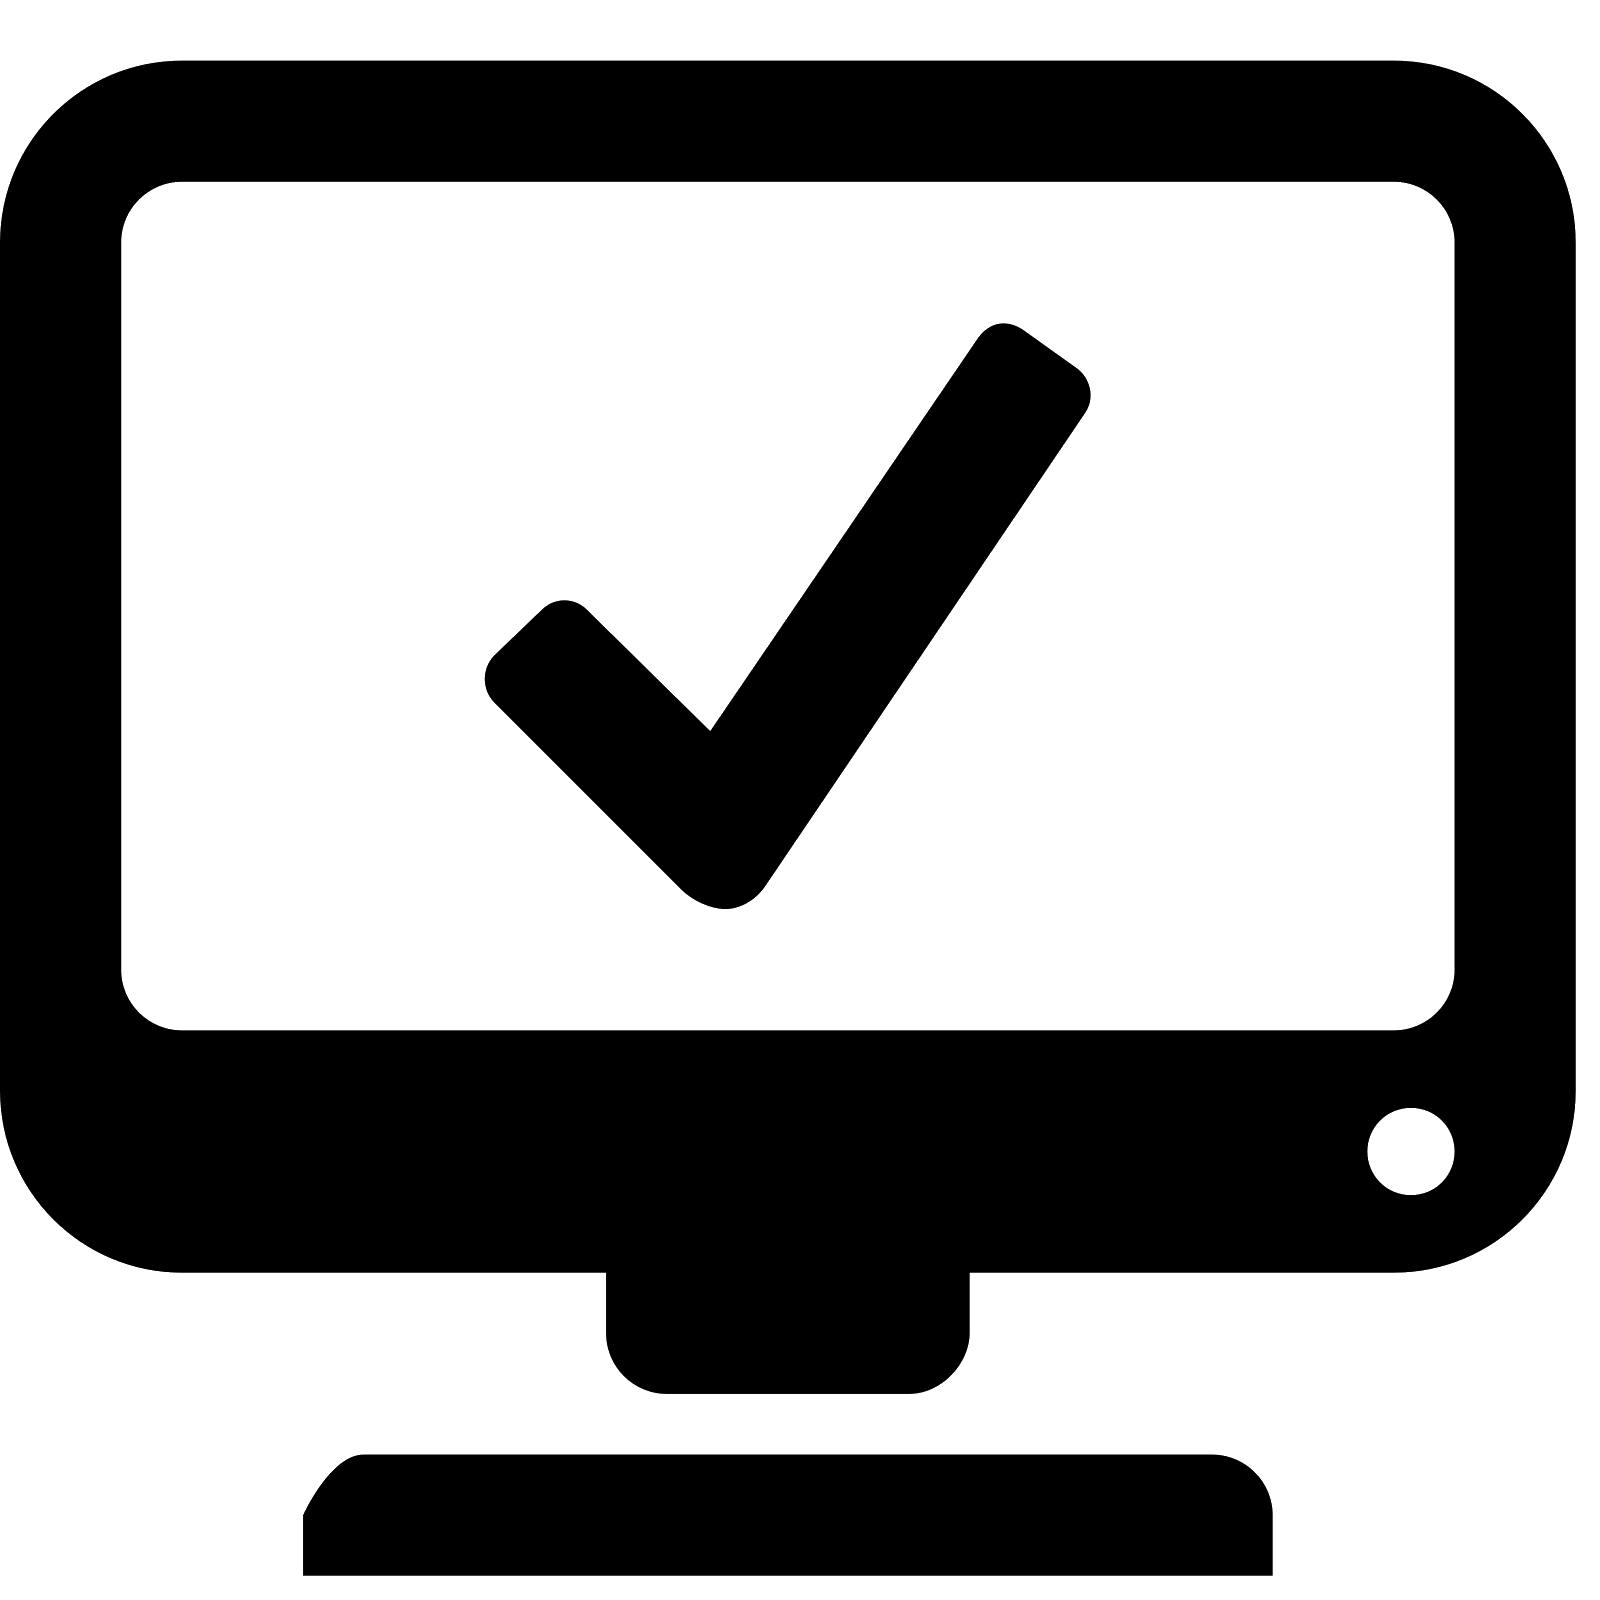 Computer logo png. System information icon free